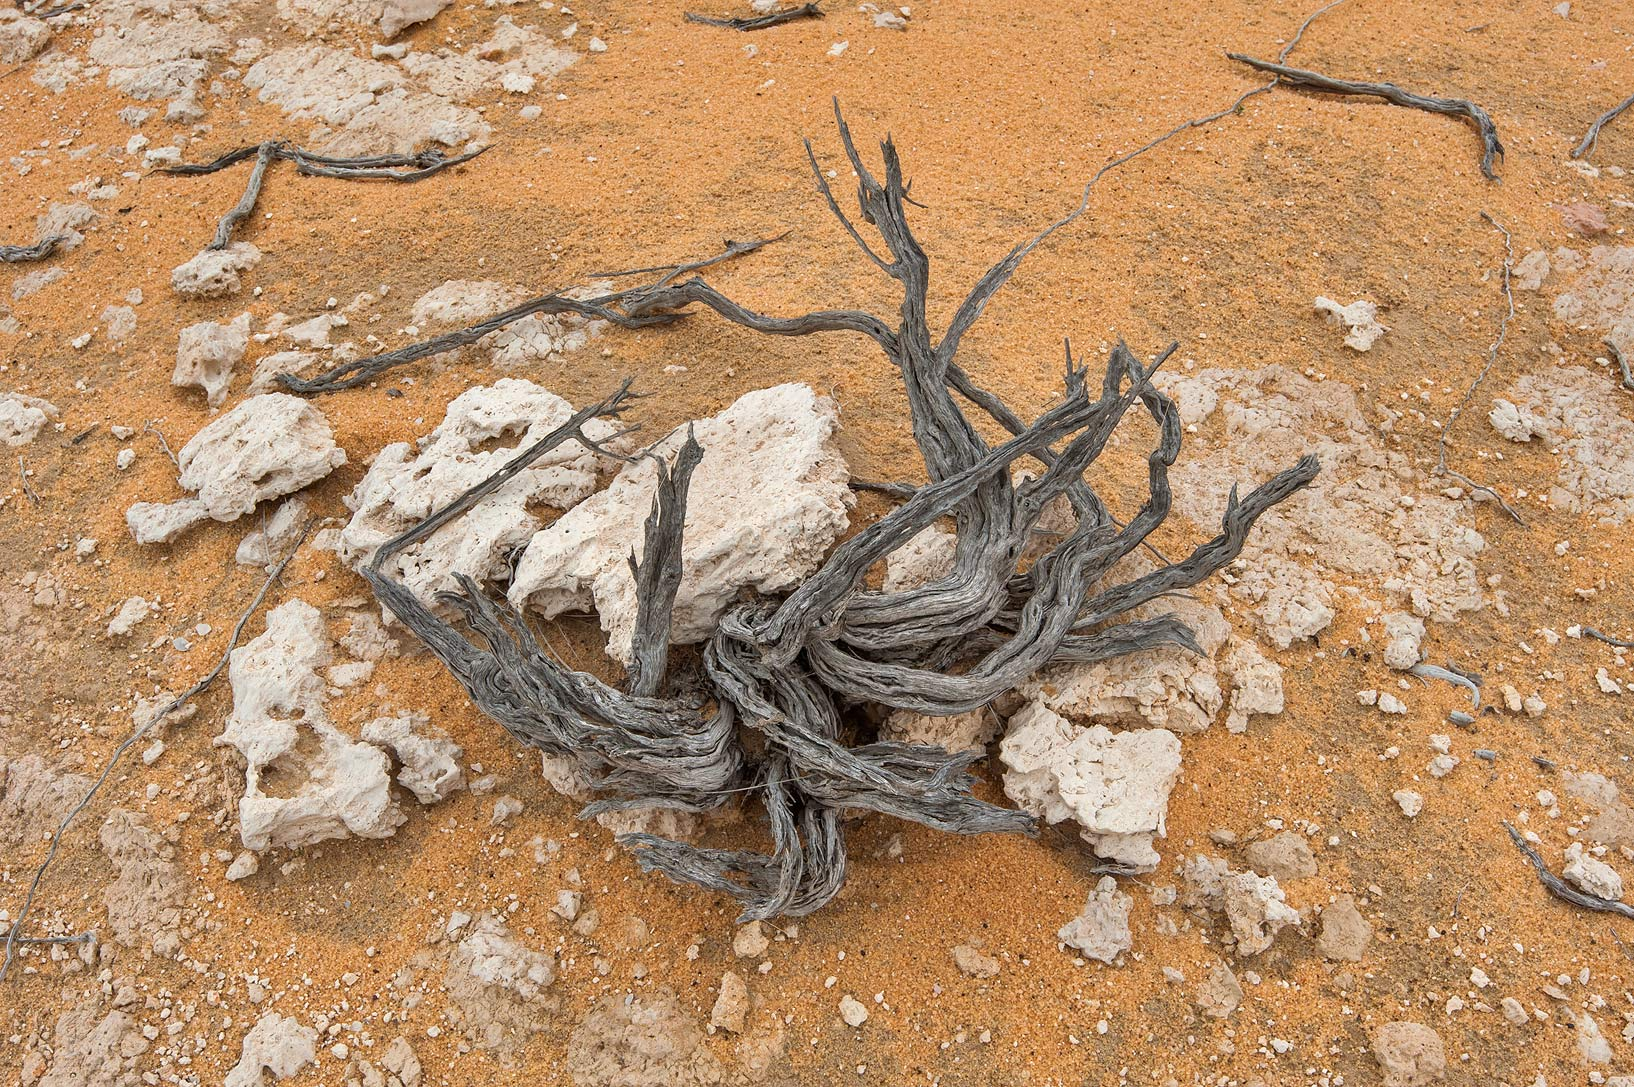 Weathered dry wood remained from a bush on a...Reserve near Abu Samra. Southern Qatar